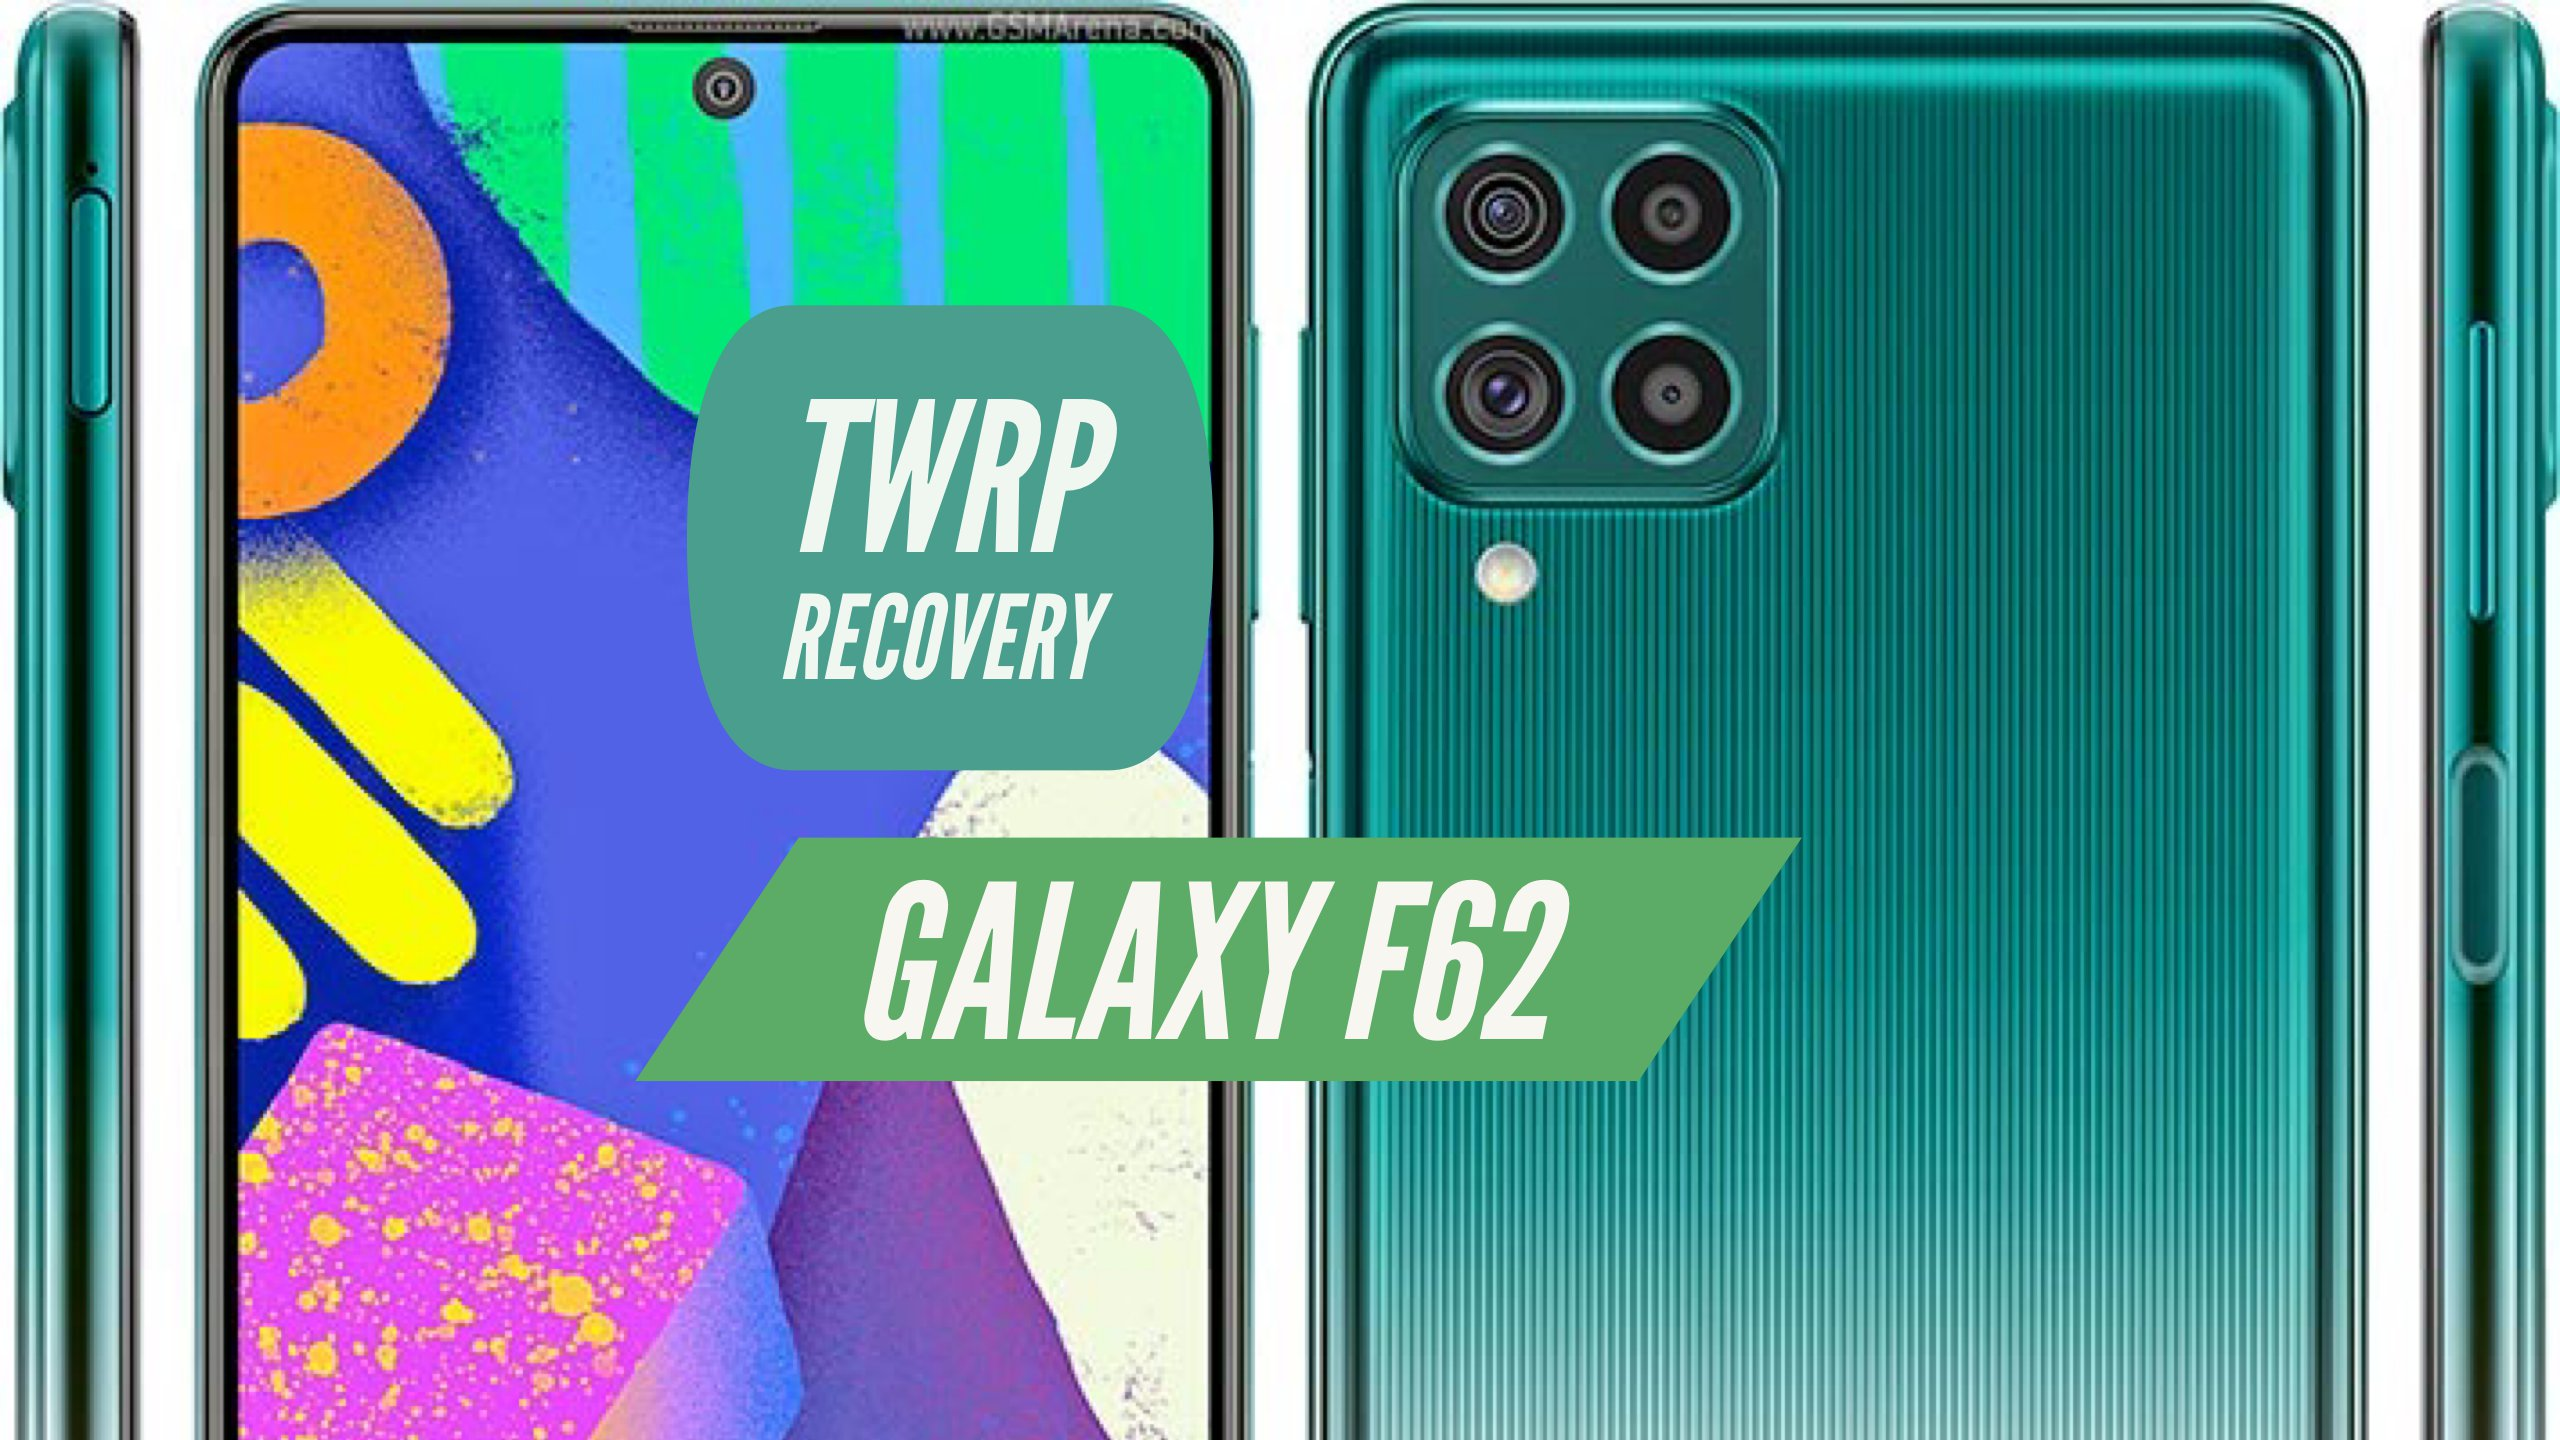 Galaxy F62 TWRP Recovery